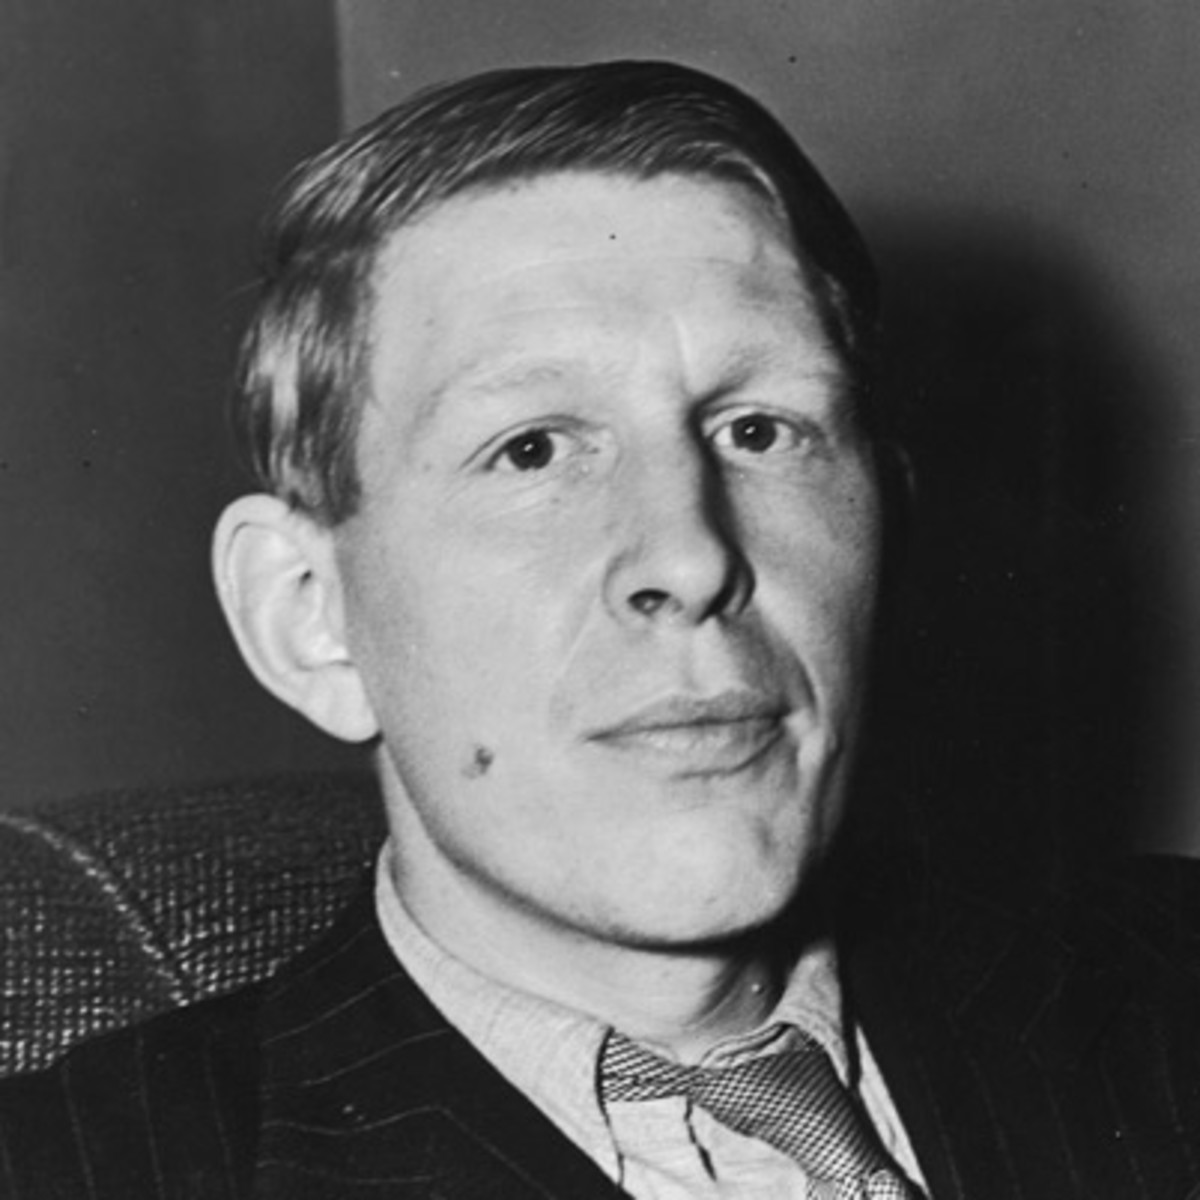 a biography of wystan hugh auden a poet The biography of wystan hugh auden is full of numerous exciting events and travels around the world he always sought to be where, in his opinion, the writer was.